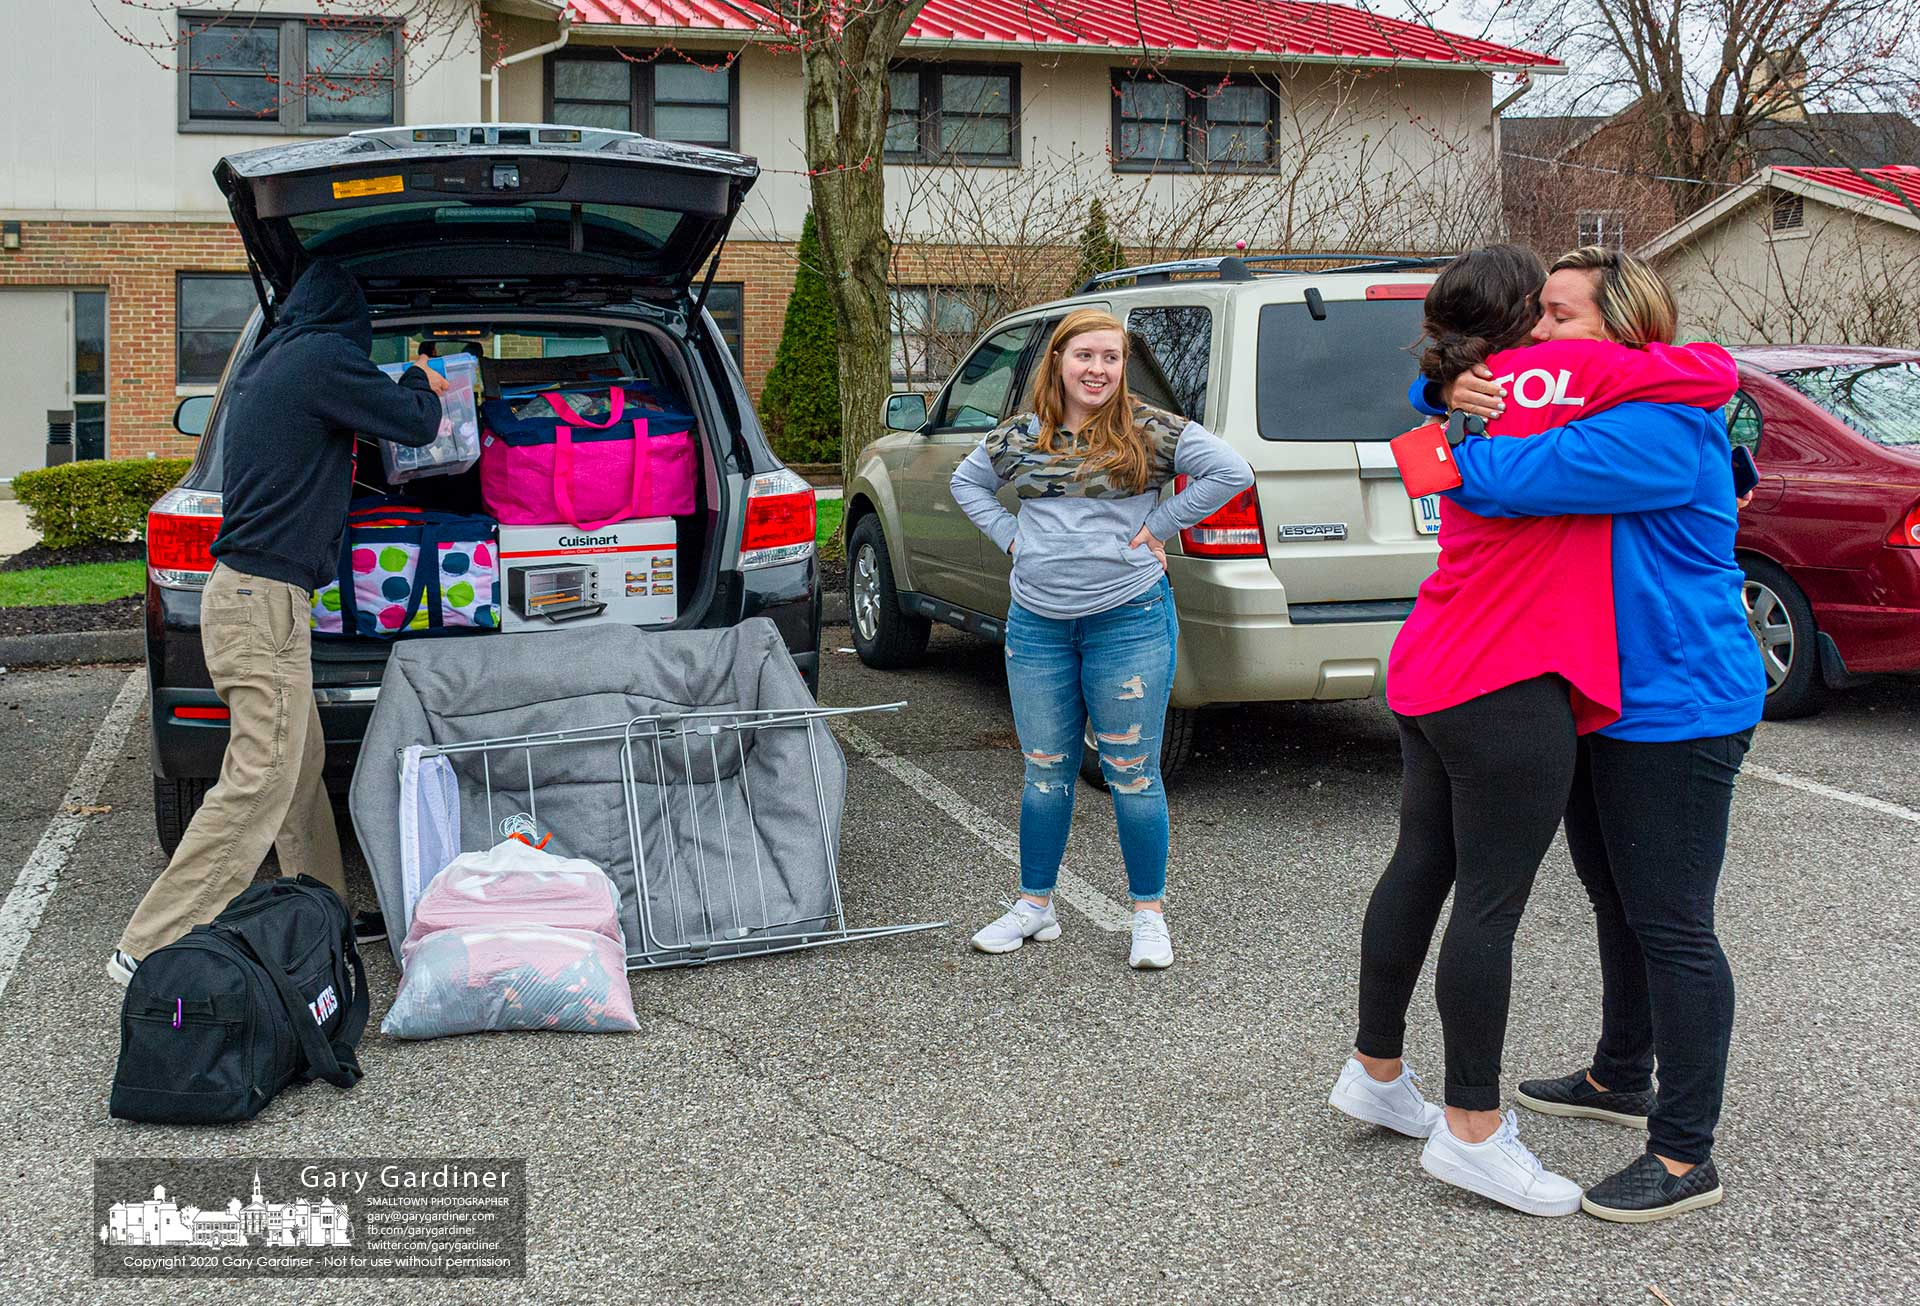 Otterbein students pack their belongings and share a hug as students in university housing must leave campus by Monday morning as part of the school's plans to limit exposure during the coronavirus pandemic. My Final Photo for March 21, 2020.